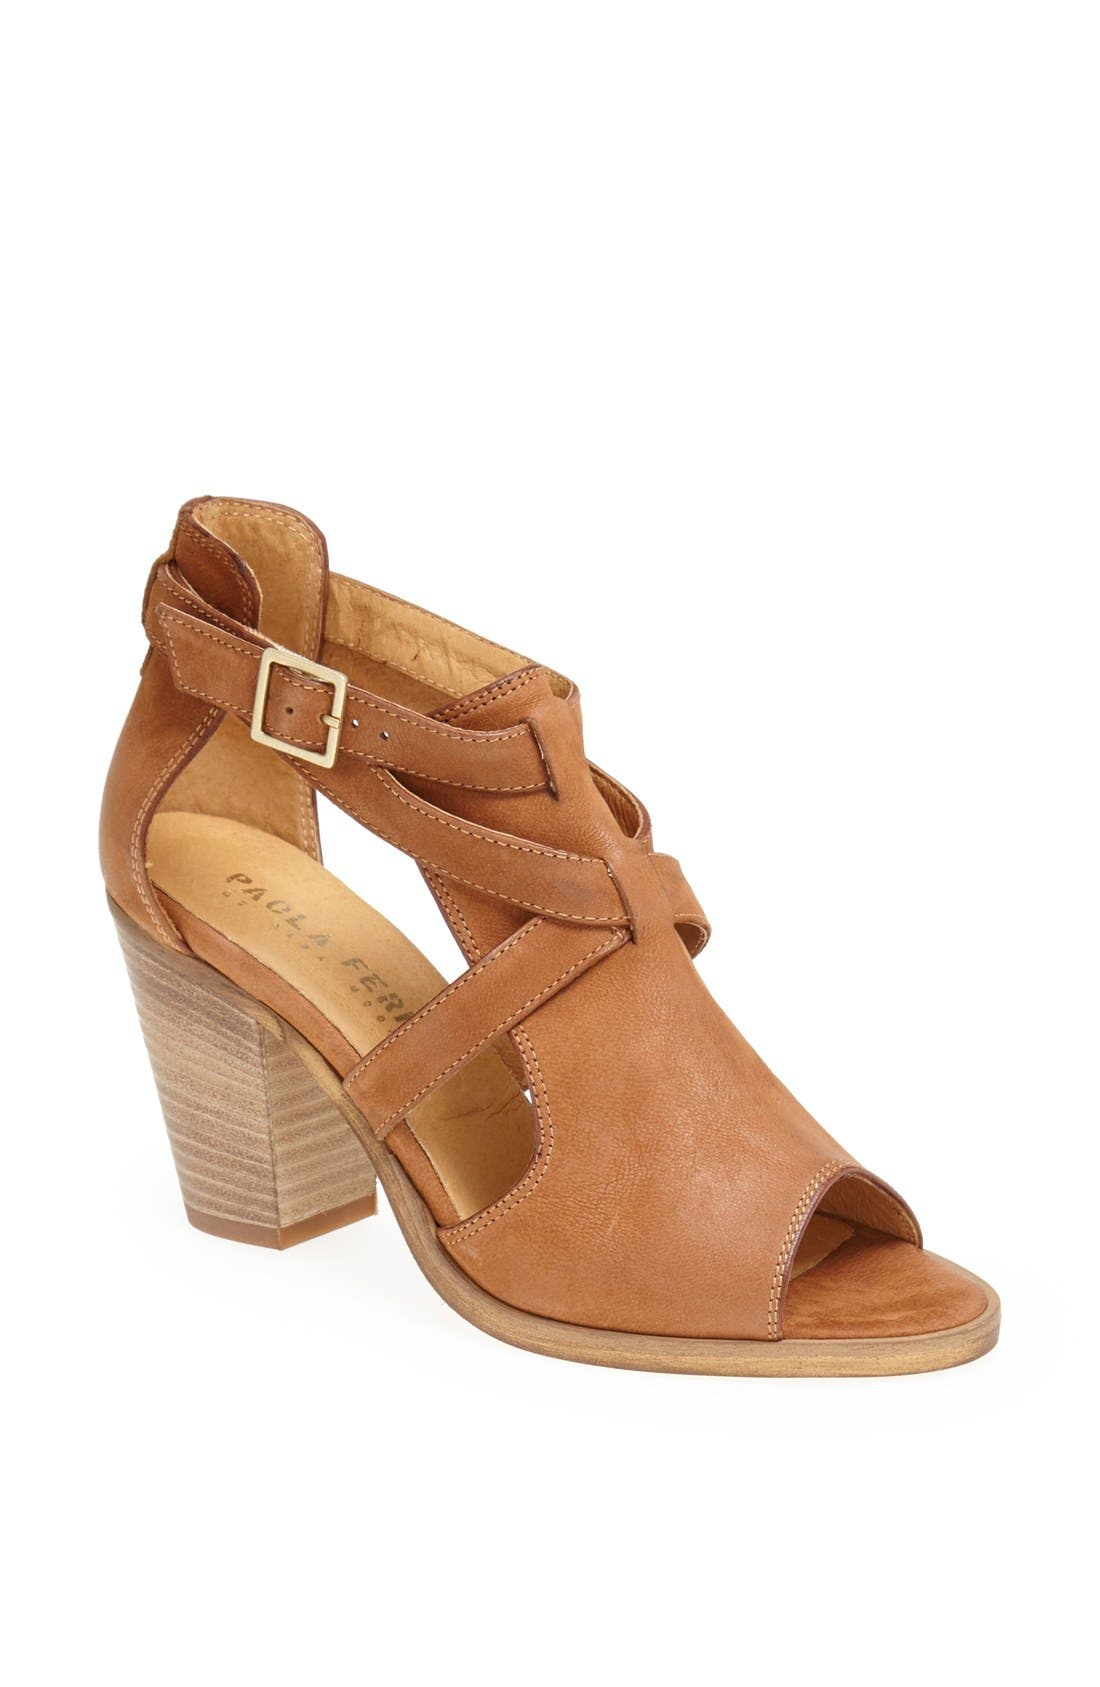 Main Image - Paola Ferri Leather Sandal